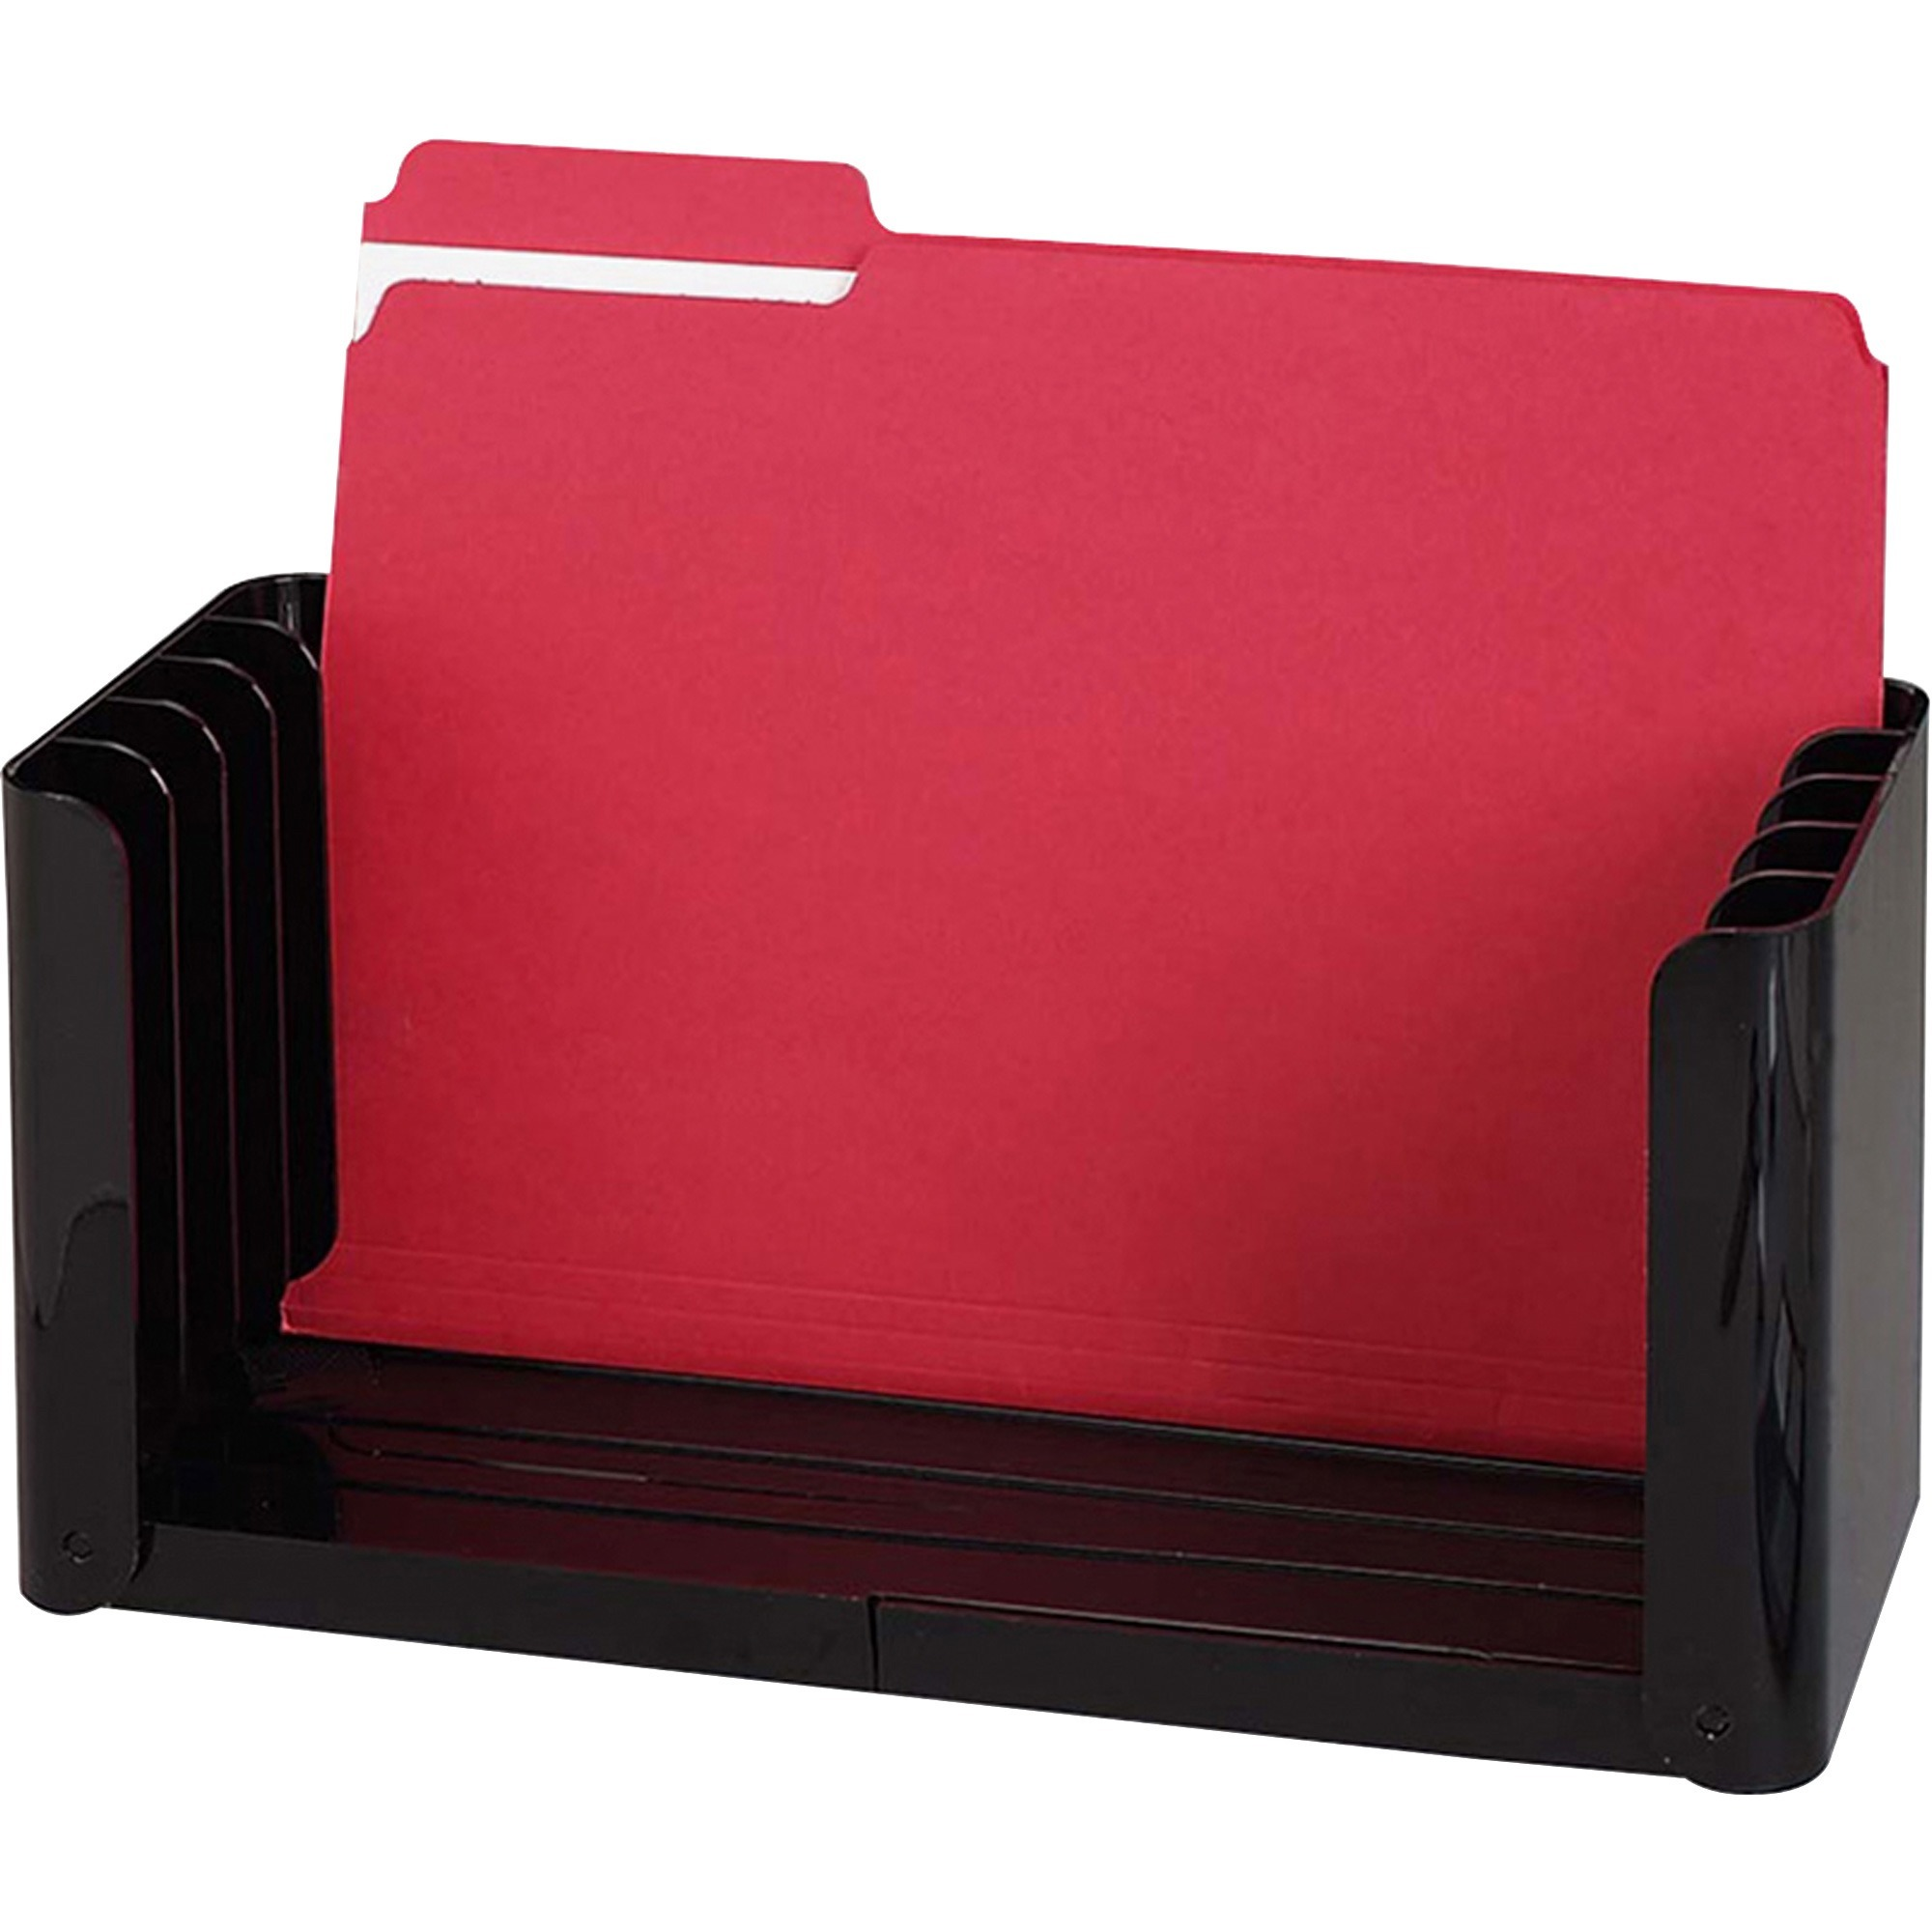 Sparco The Folder Holder 5 Compartment S 6 1 Height X 15 Width 4 Depth Desktop Ebony 1each